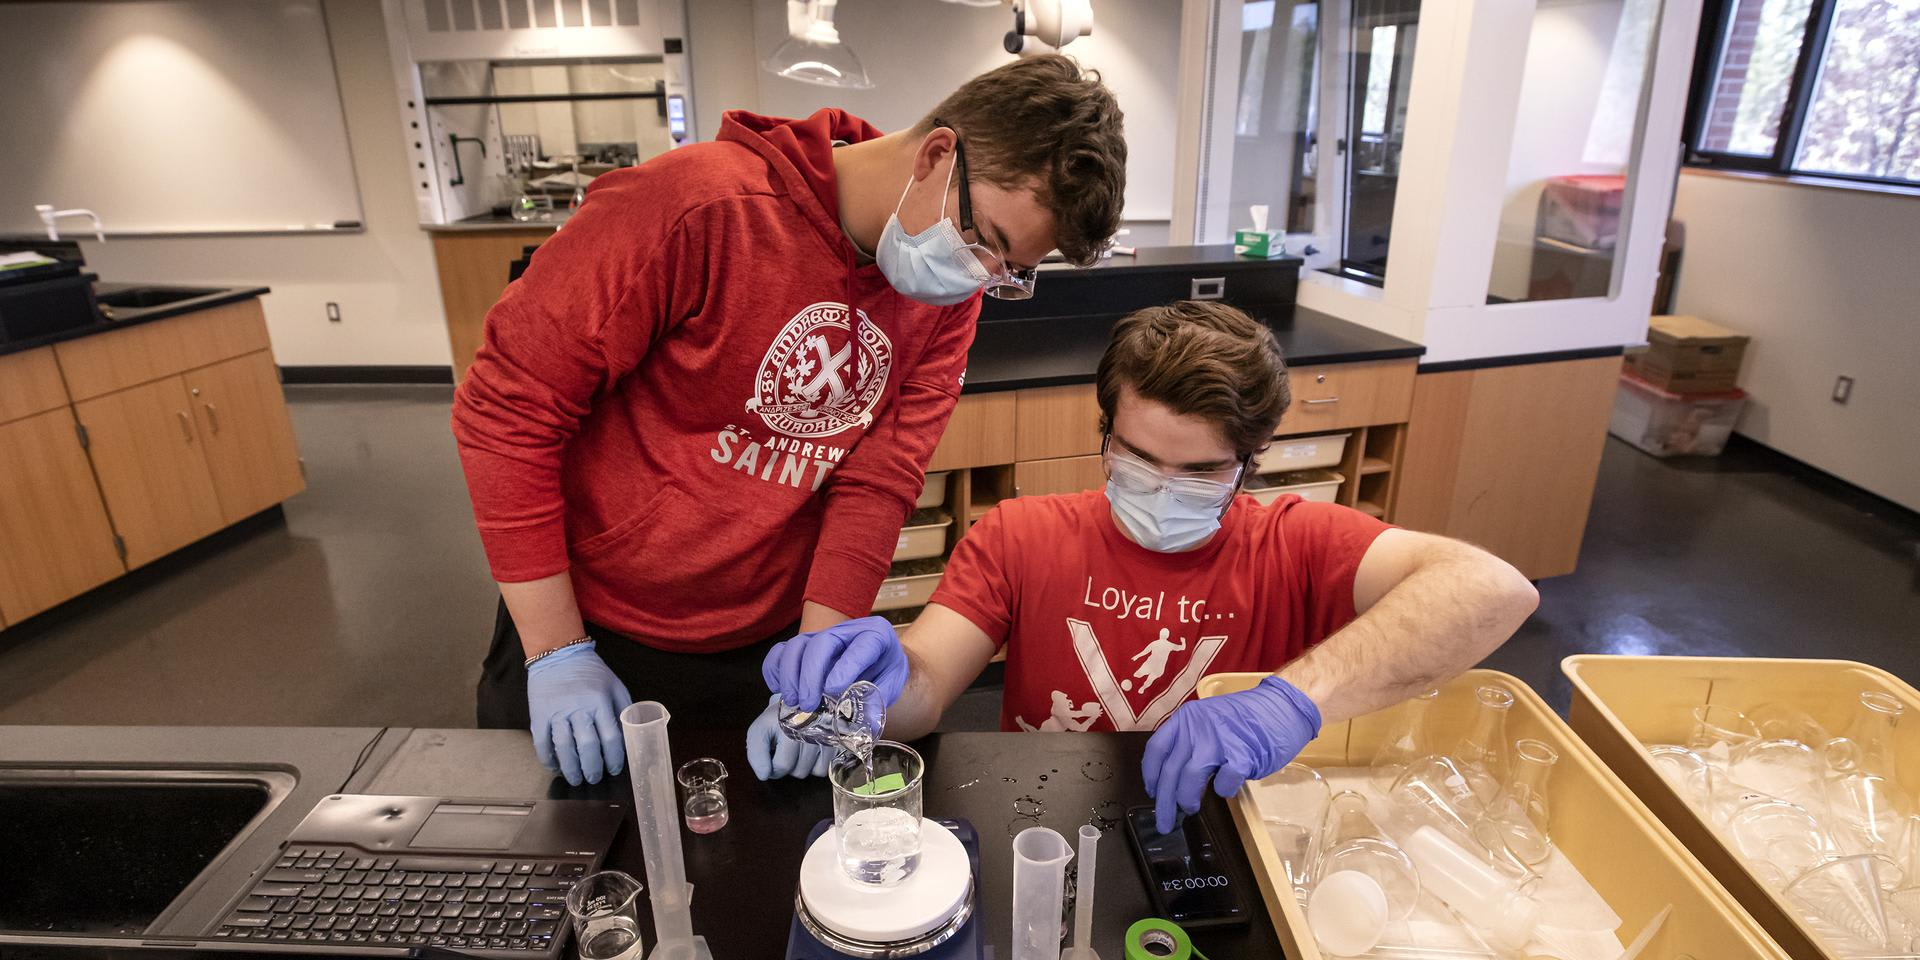 ST. ANDREW'S COLLEGE - Sci-tech students in their element at St. Andrew's College